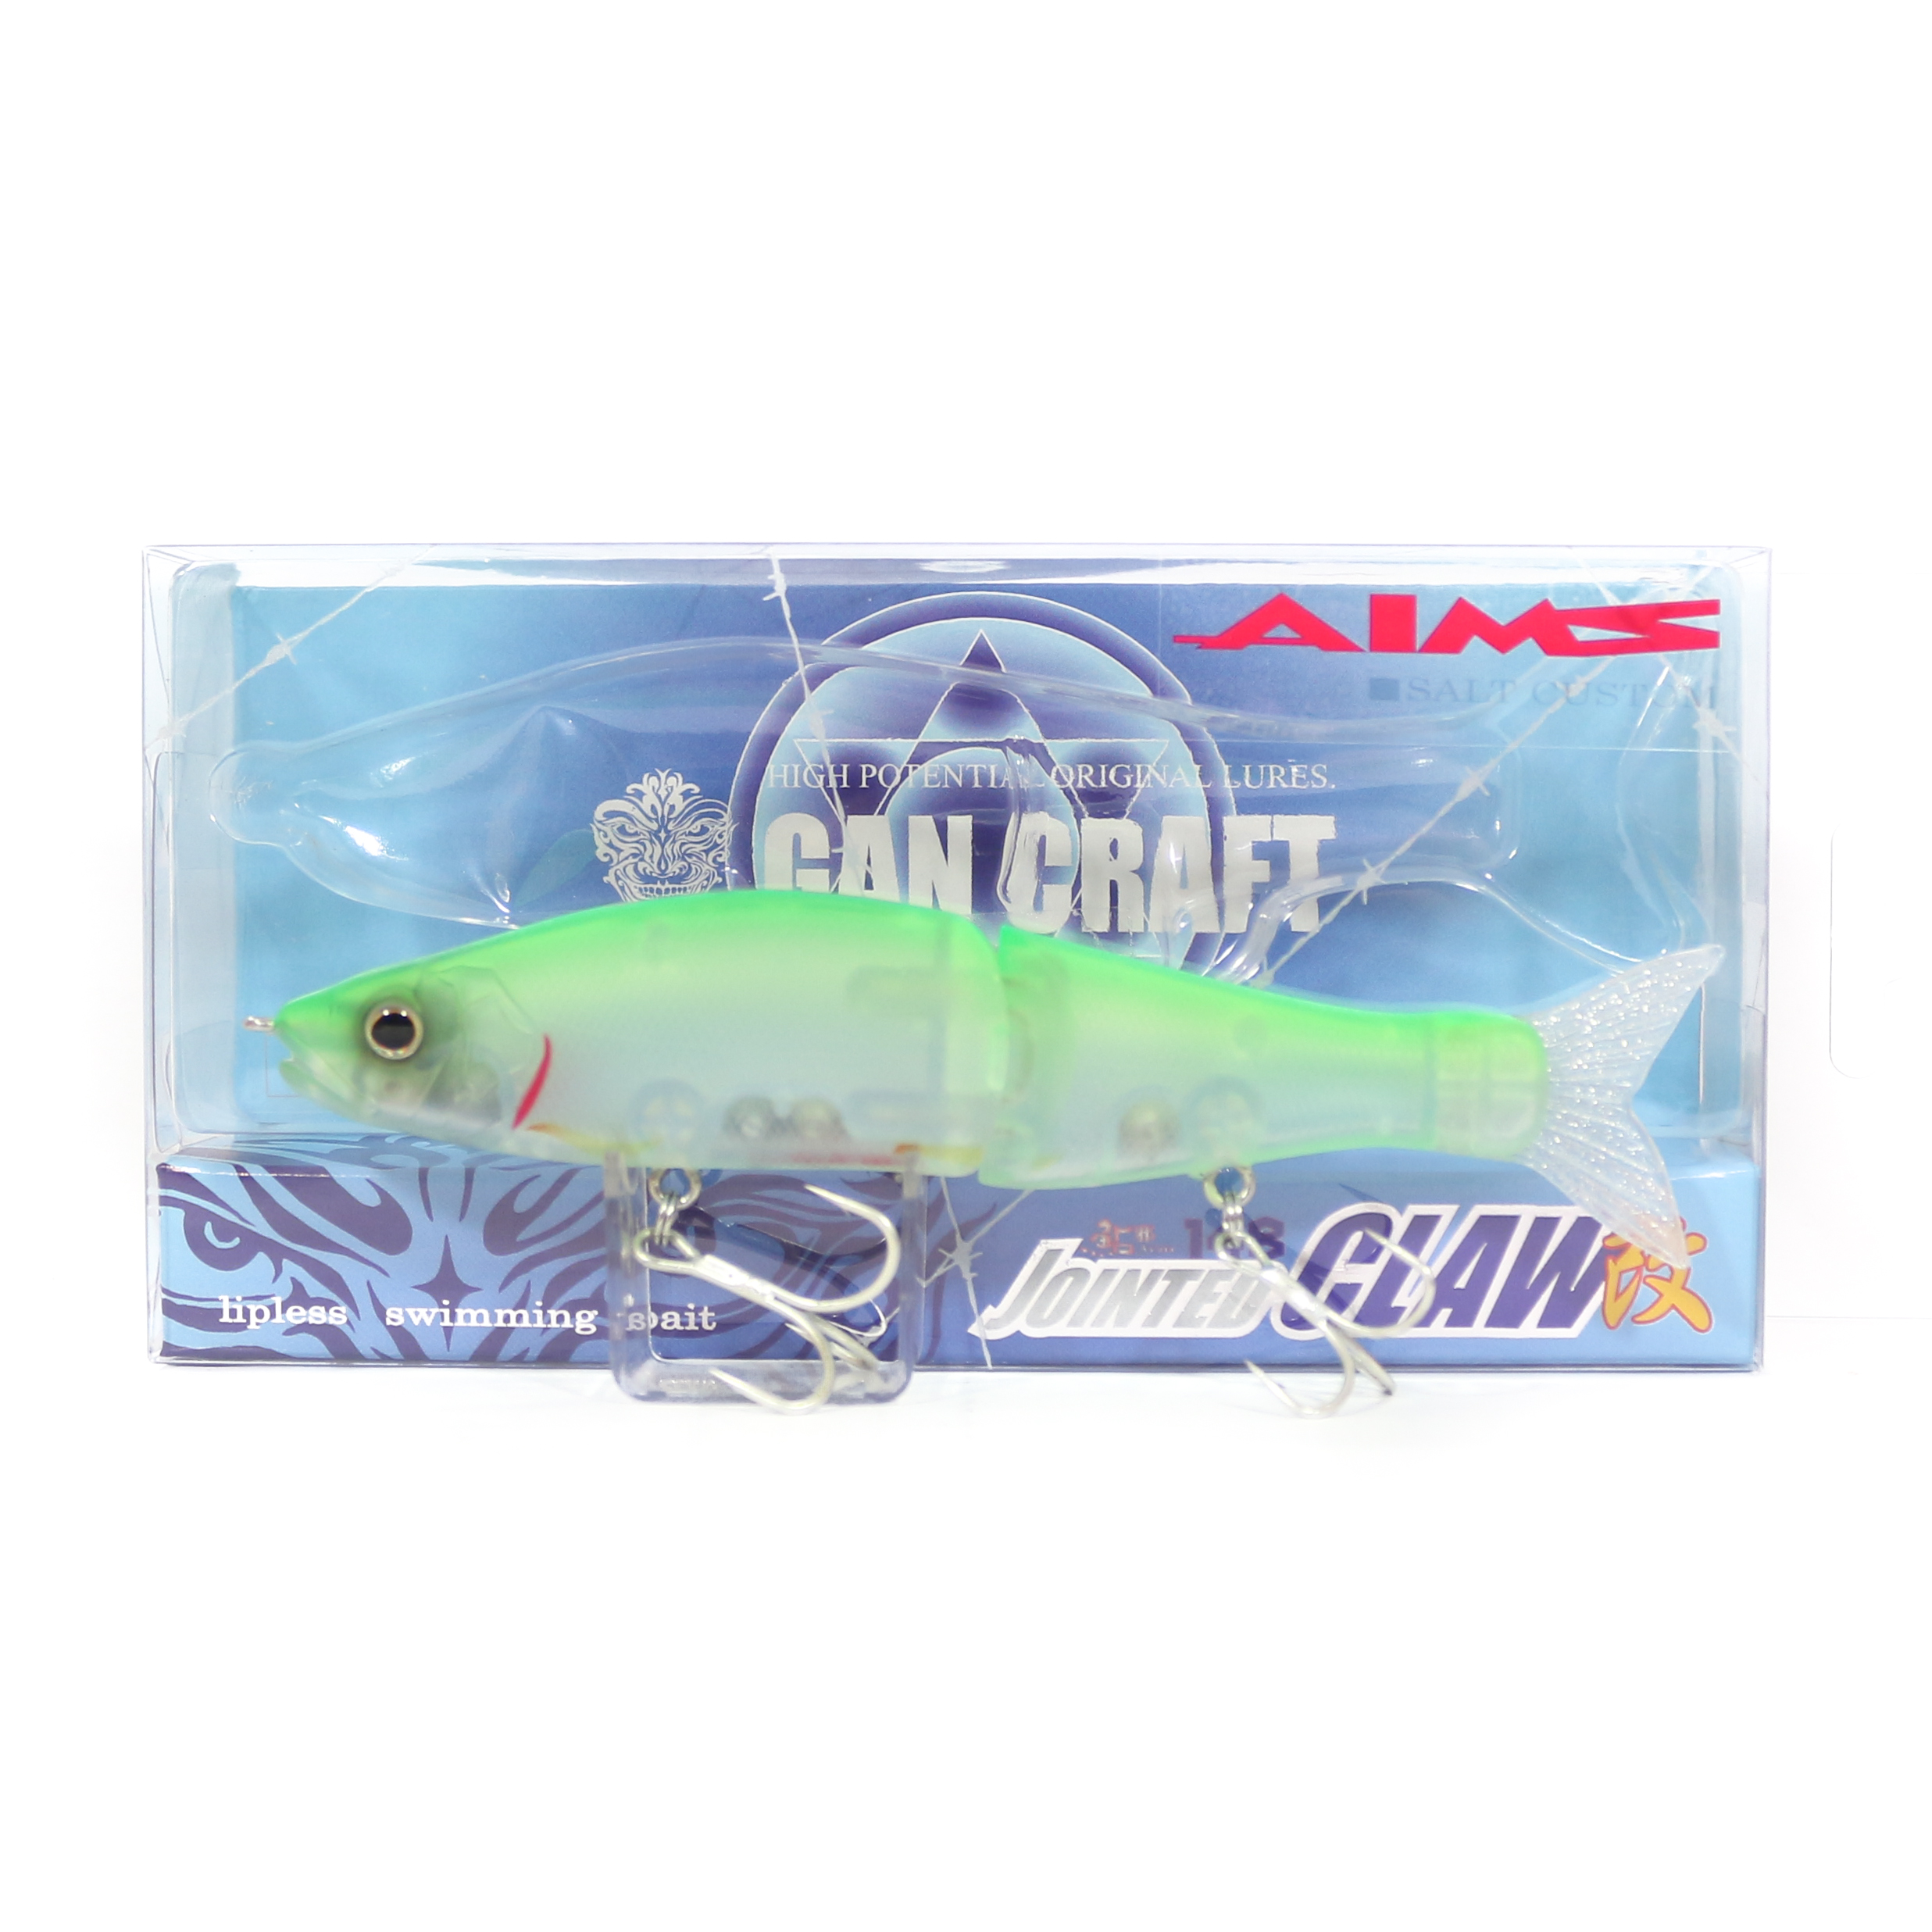 Gan Craft Jointed Claw 148S Salt Slow Sinking Jointed Lure AS-13 (0281)